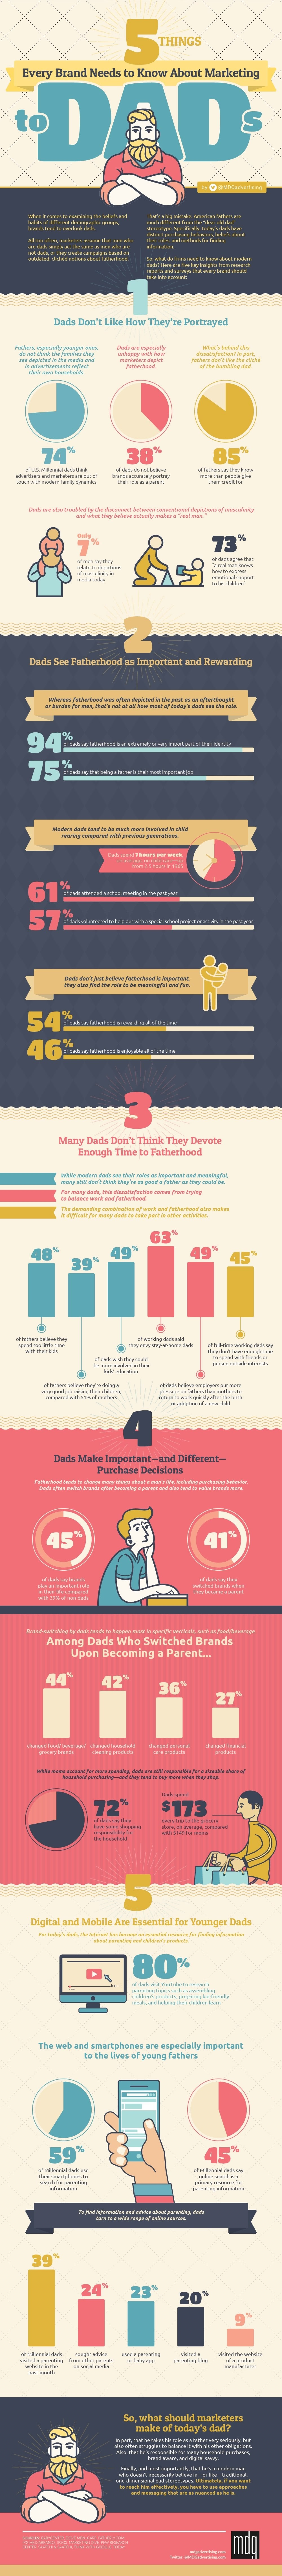 5 Things Every Brand Needs to Know About Marketing to Dads [Infographic]